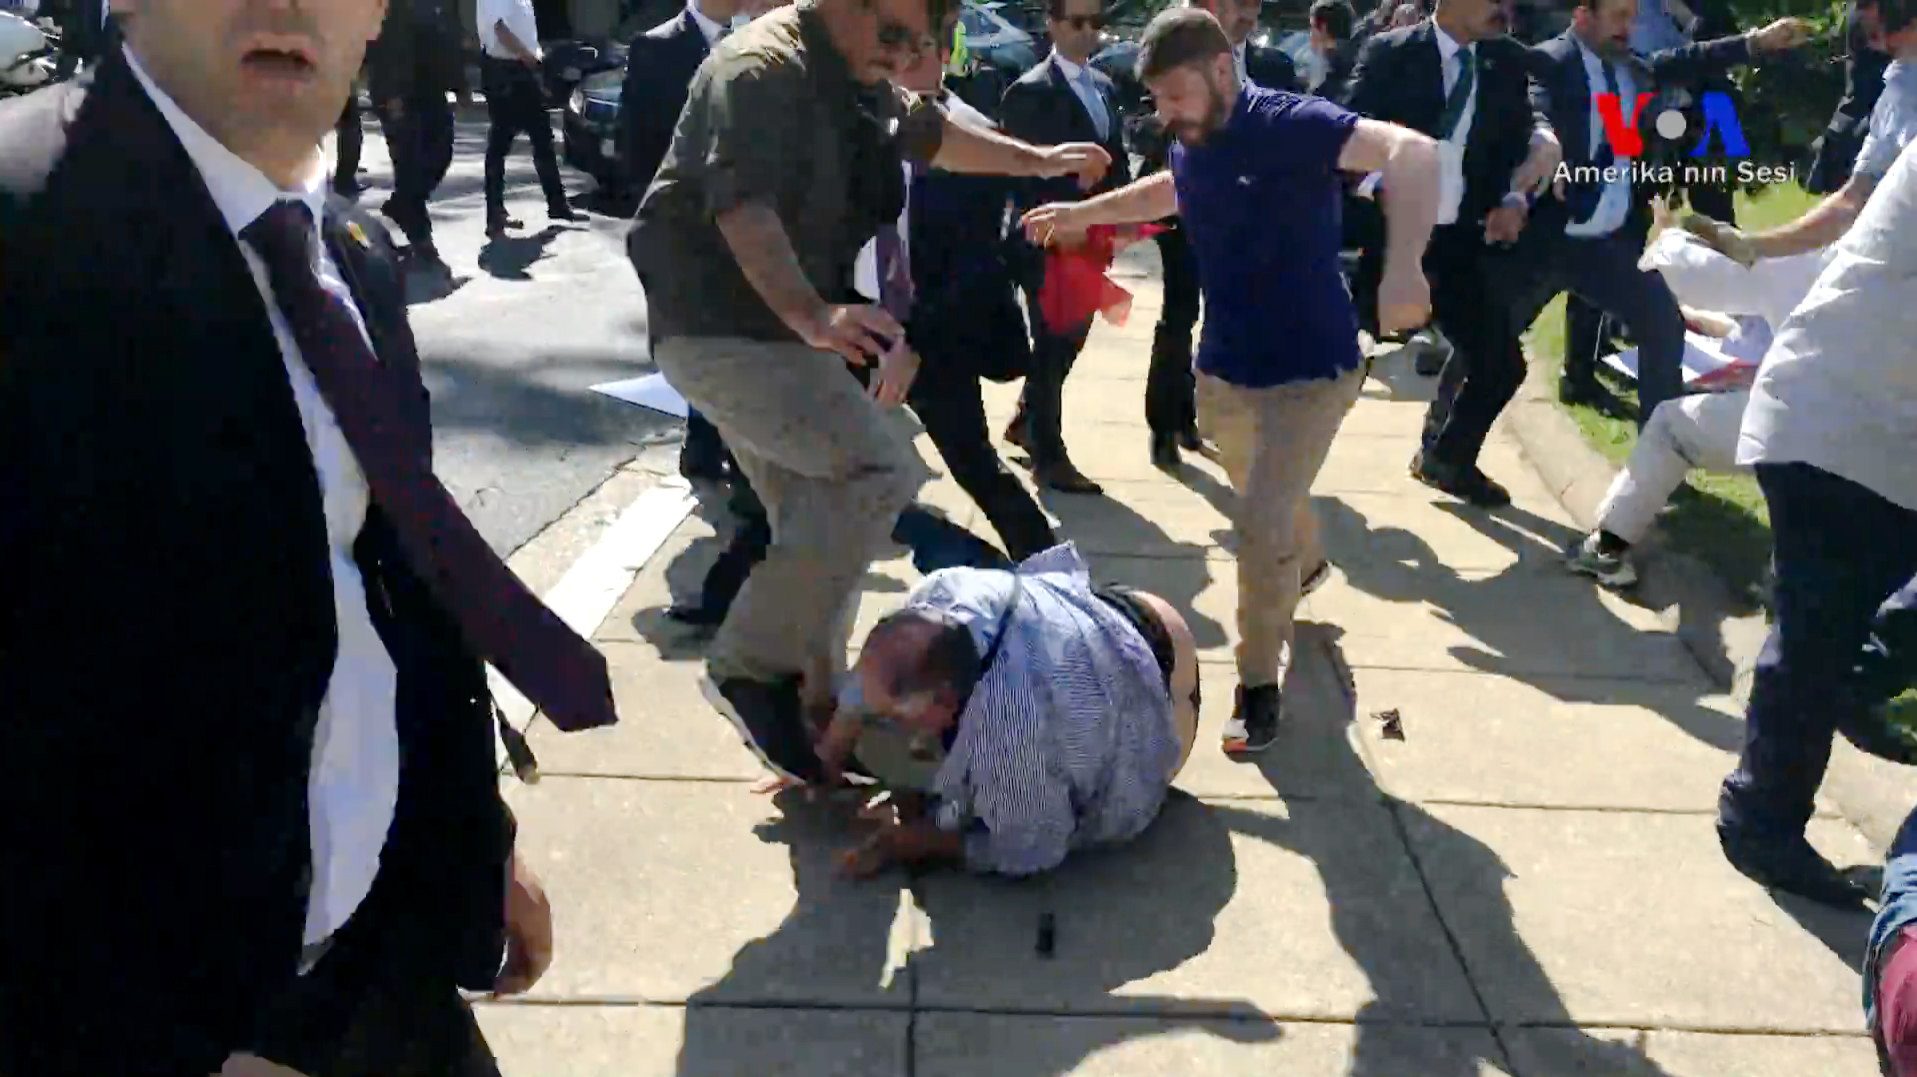 State Dept. Summons Turkish Envoy After Bloody D.C. Brawl